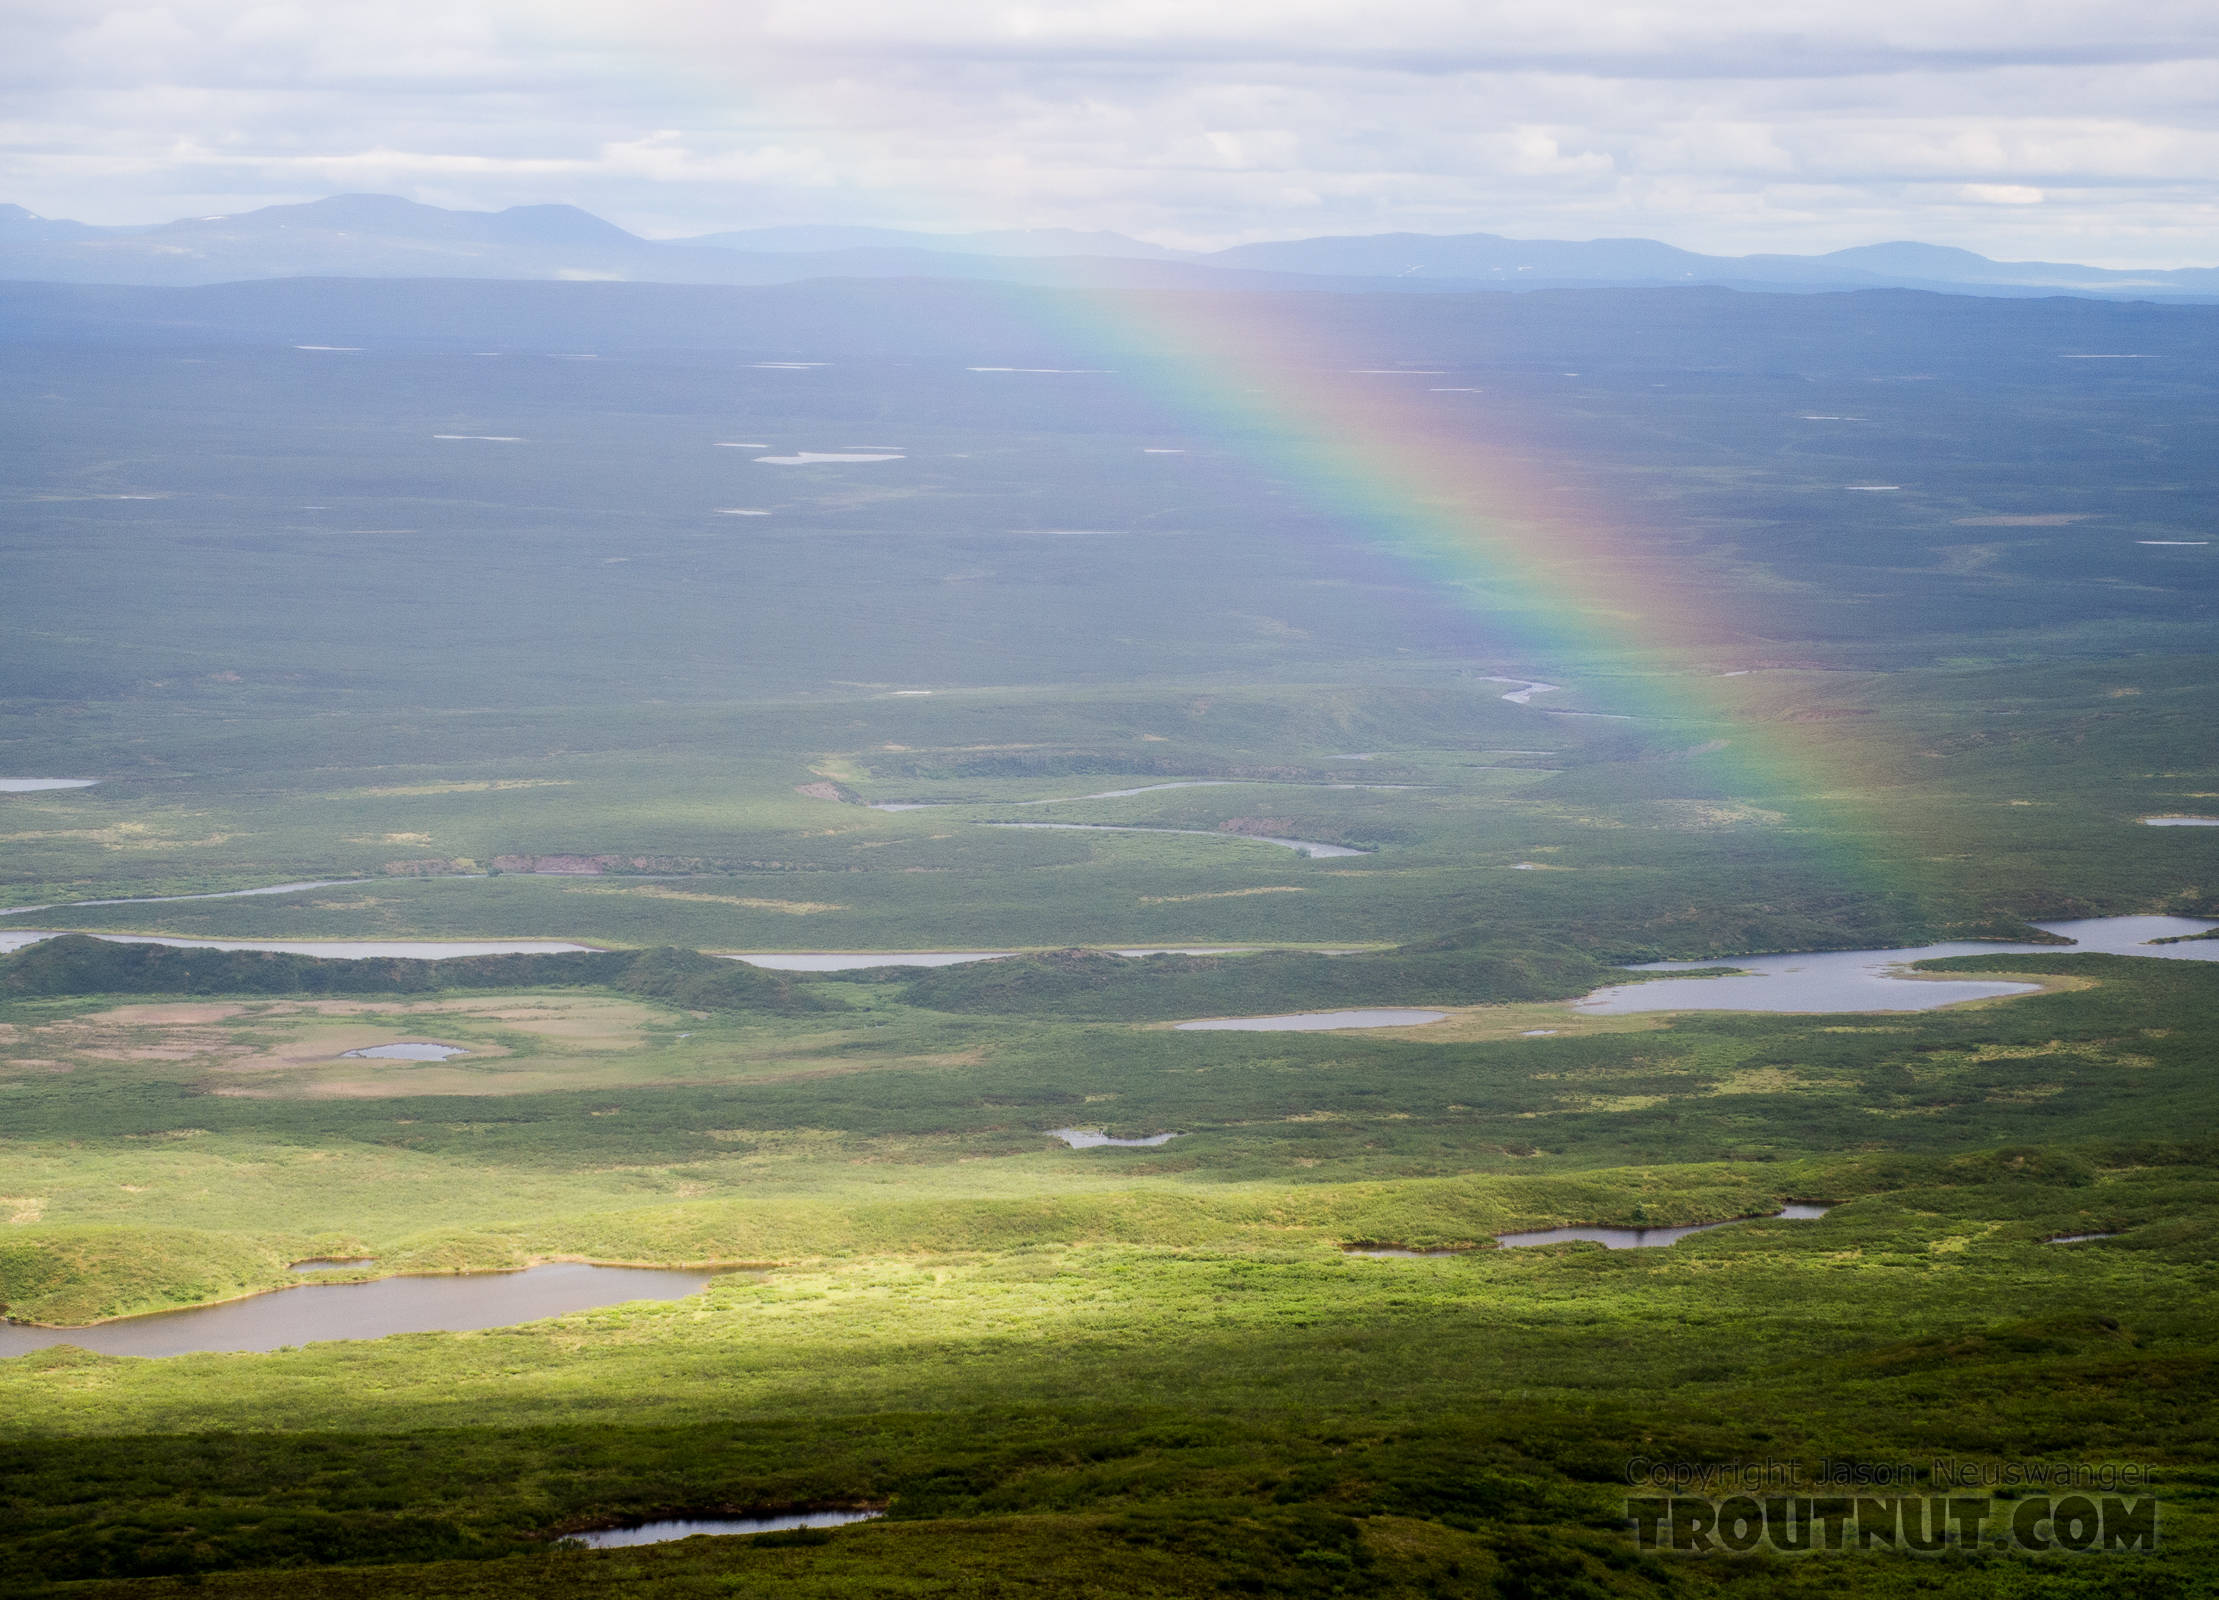 Rainbow over the Clearwater Creek valley. From Clearwater Mountains in Alaska.